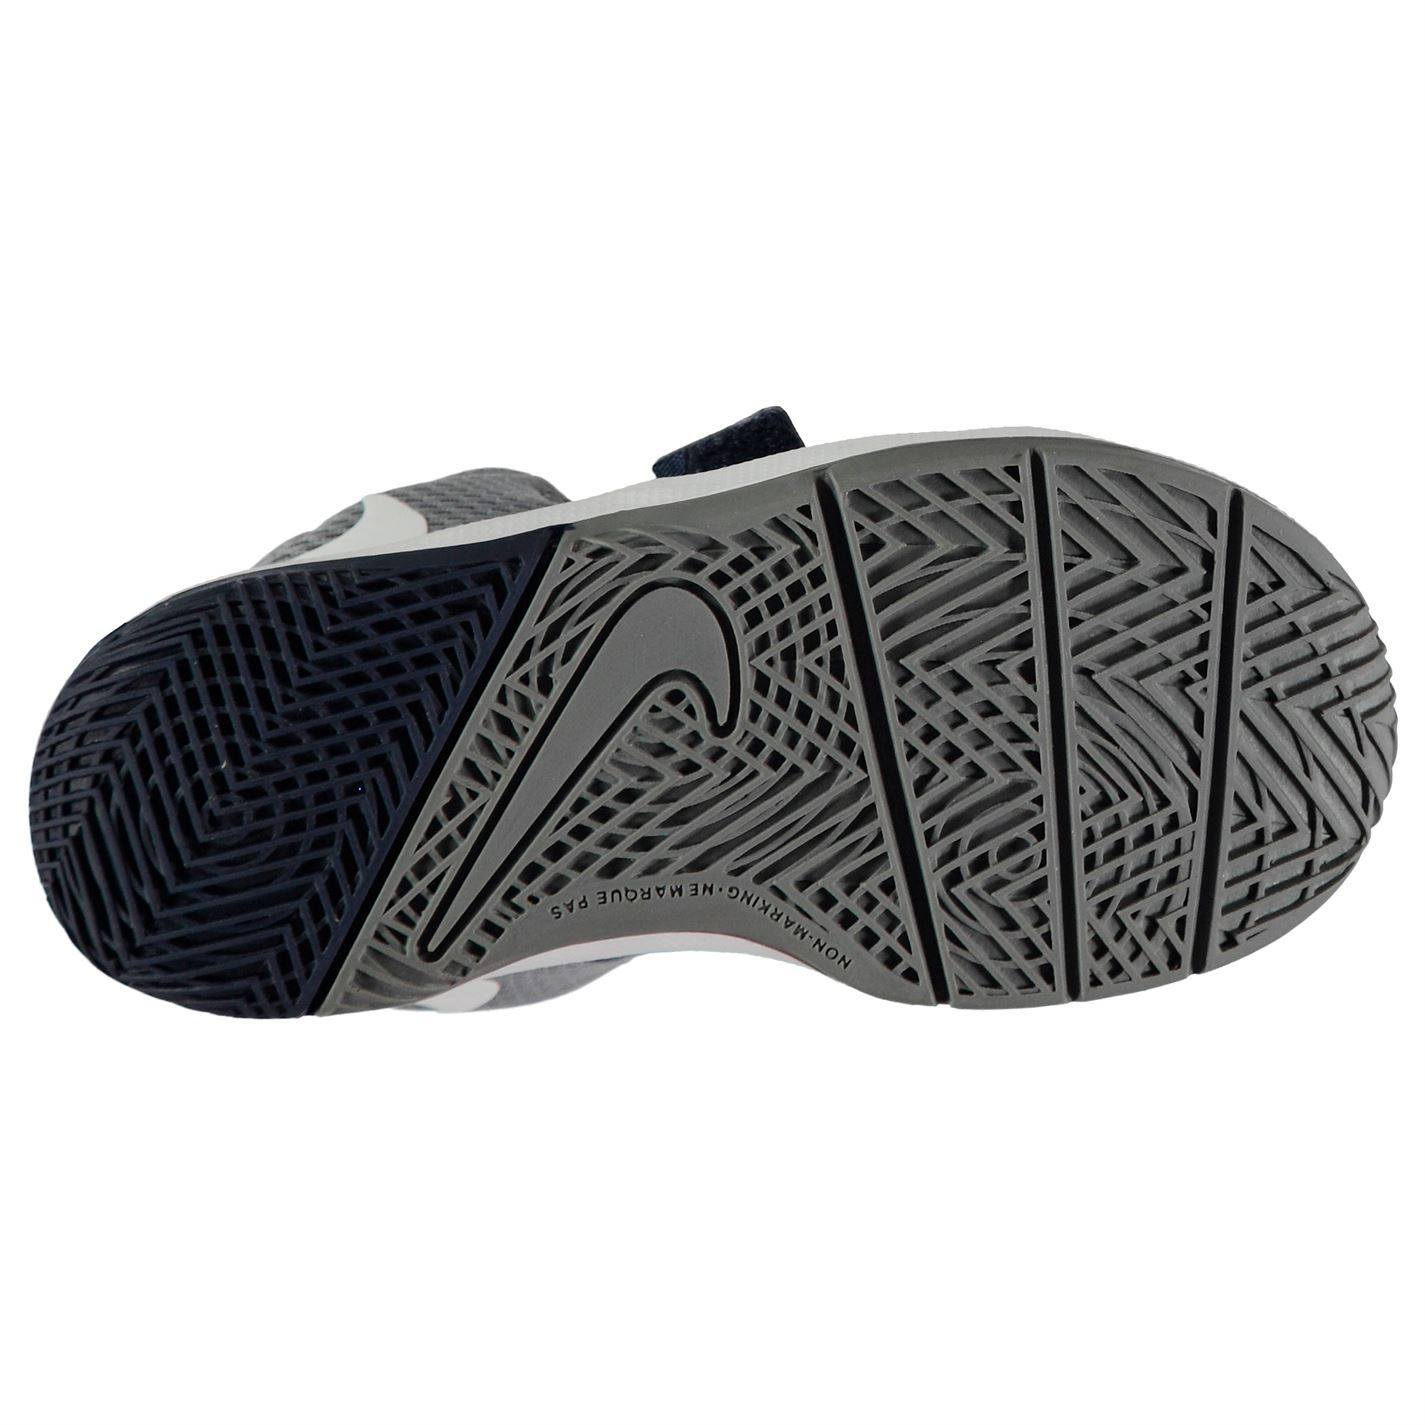 44a685569ed ... Nike Team Hustle D8 Basketball Trainers Infant Boys Navy White Shoes  Footwear